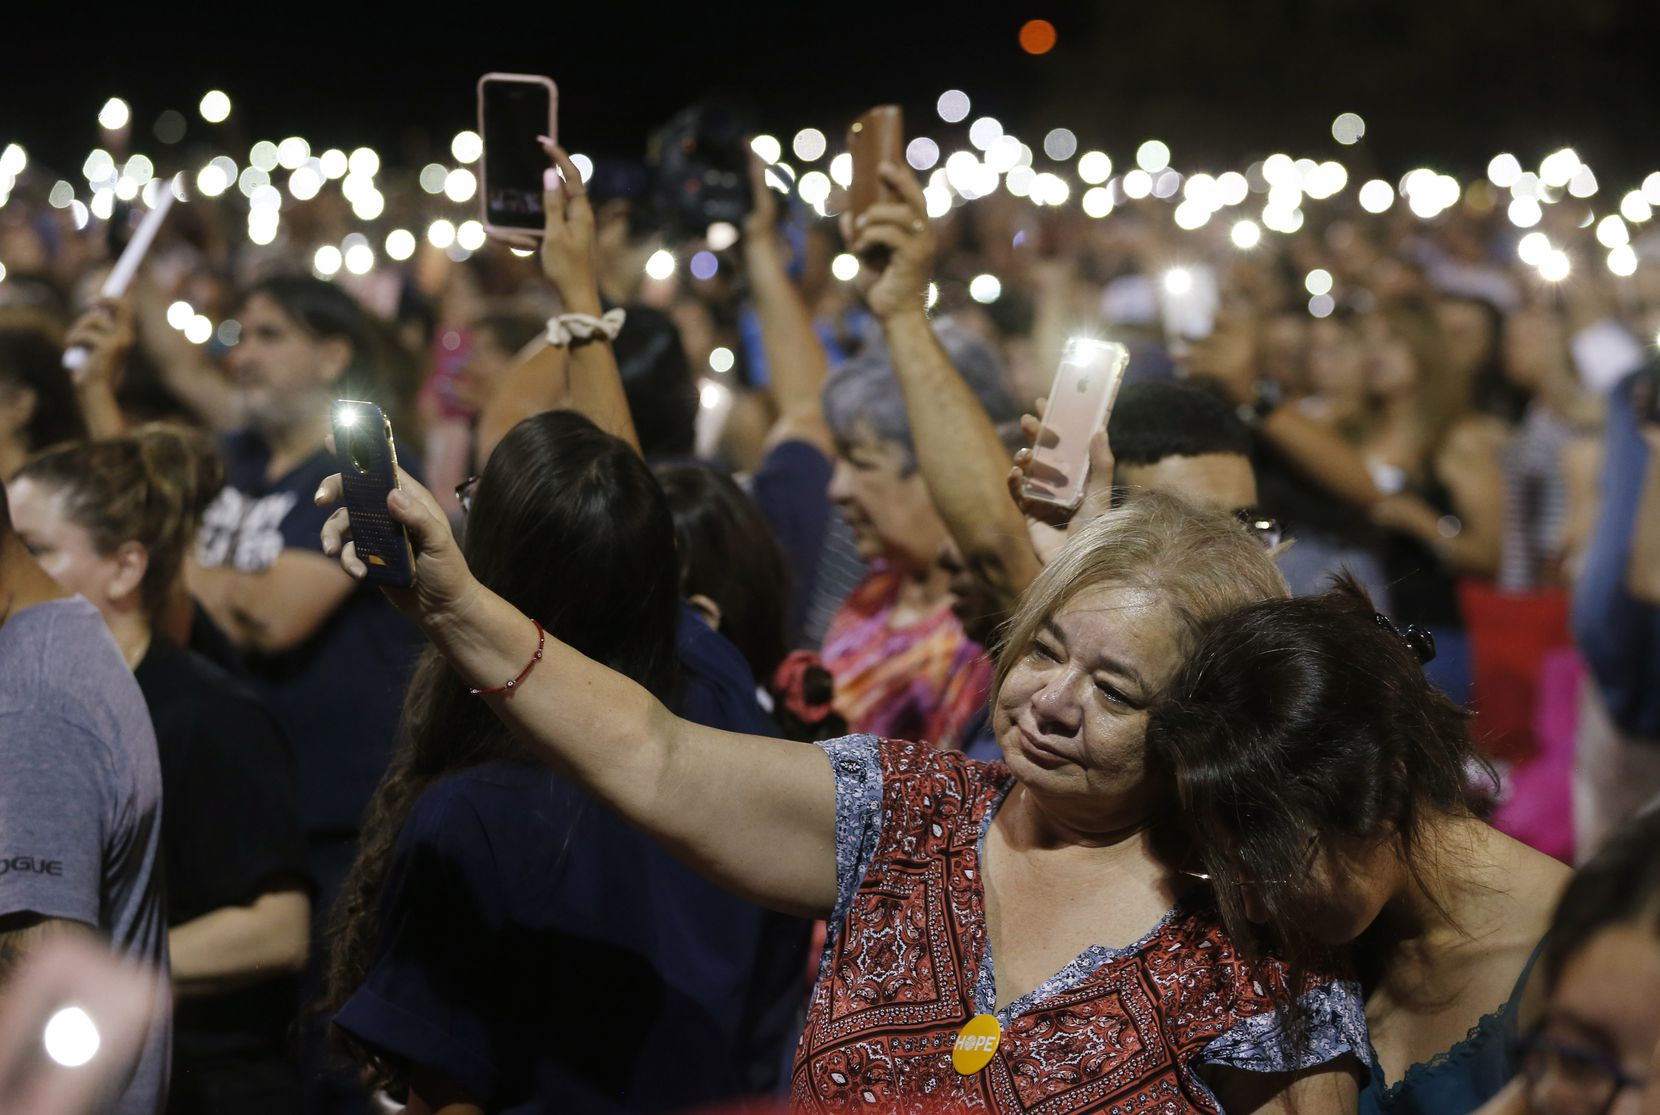 Martha Cortez (left) with her daughter Alexandra Cortez  both of El Paso join with the community during a vigil at Ponder park in El Paso, Texas on Sunday, August 4, 2019. Less than a mile away is the scene where 20 people were shot and killed and 26 more were wounded at a Walmart in El Paso on Saturday.